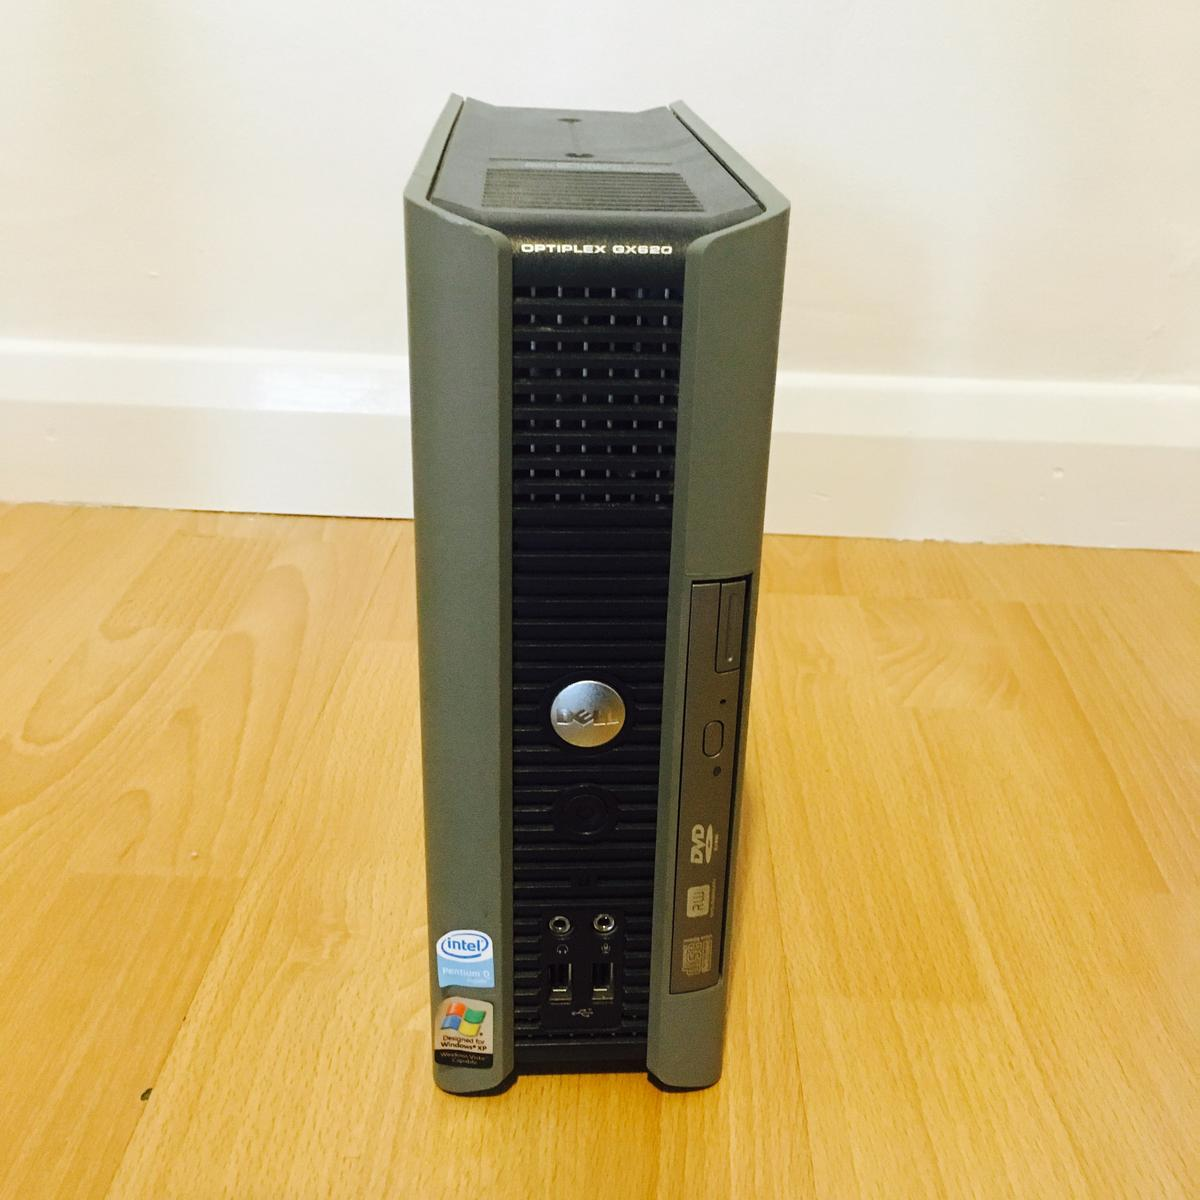 Dell Optiplex GX620 | PC Micro Tower | Win 7 in GL1 Gloucester for